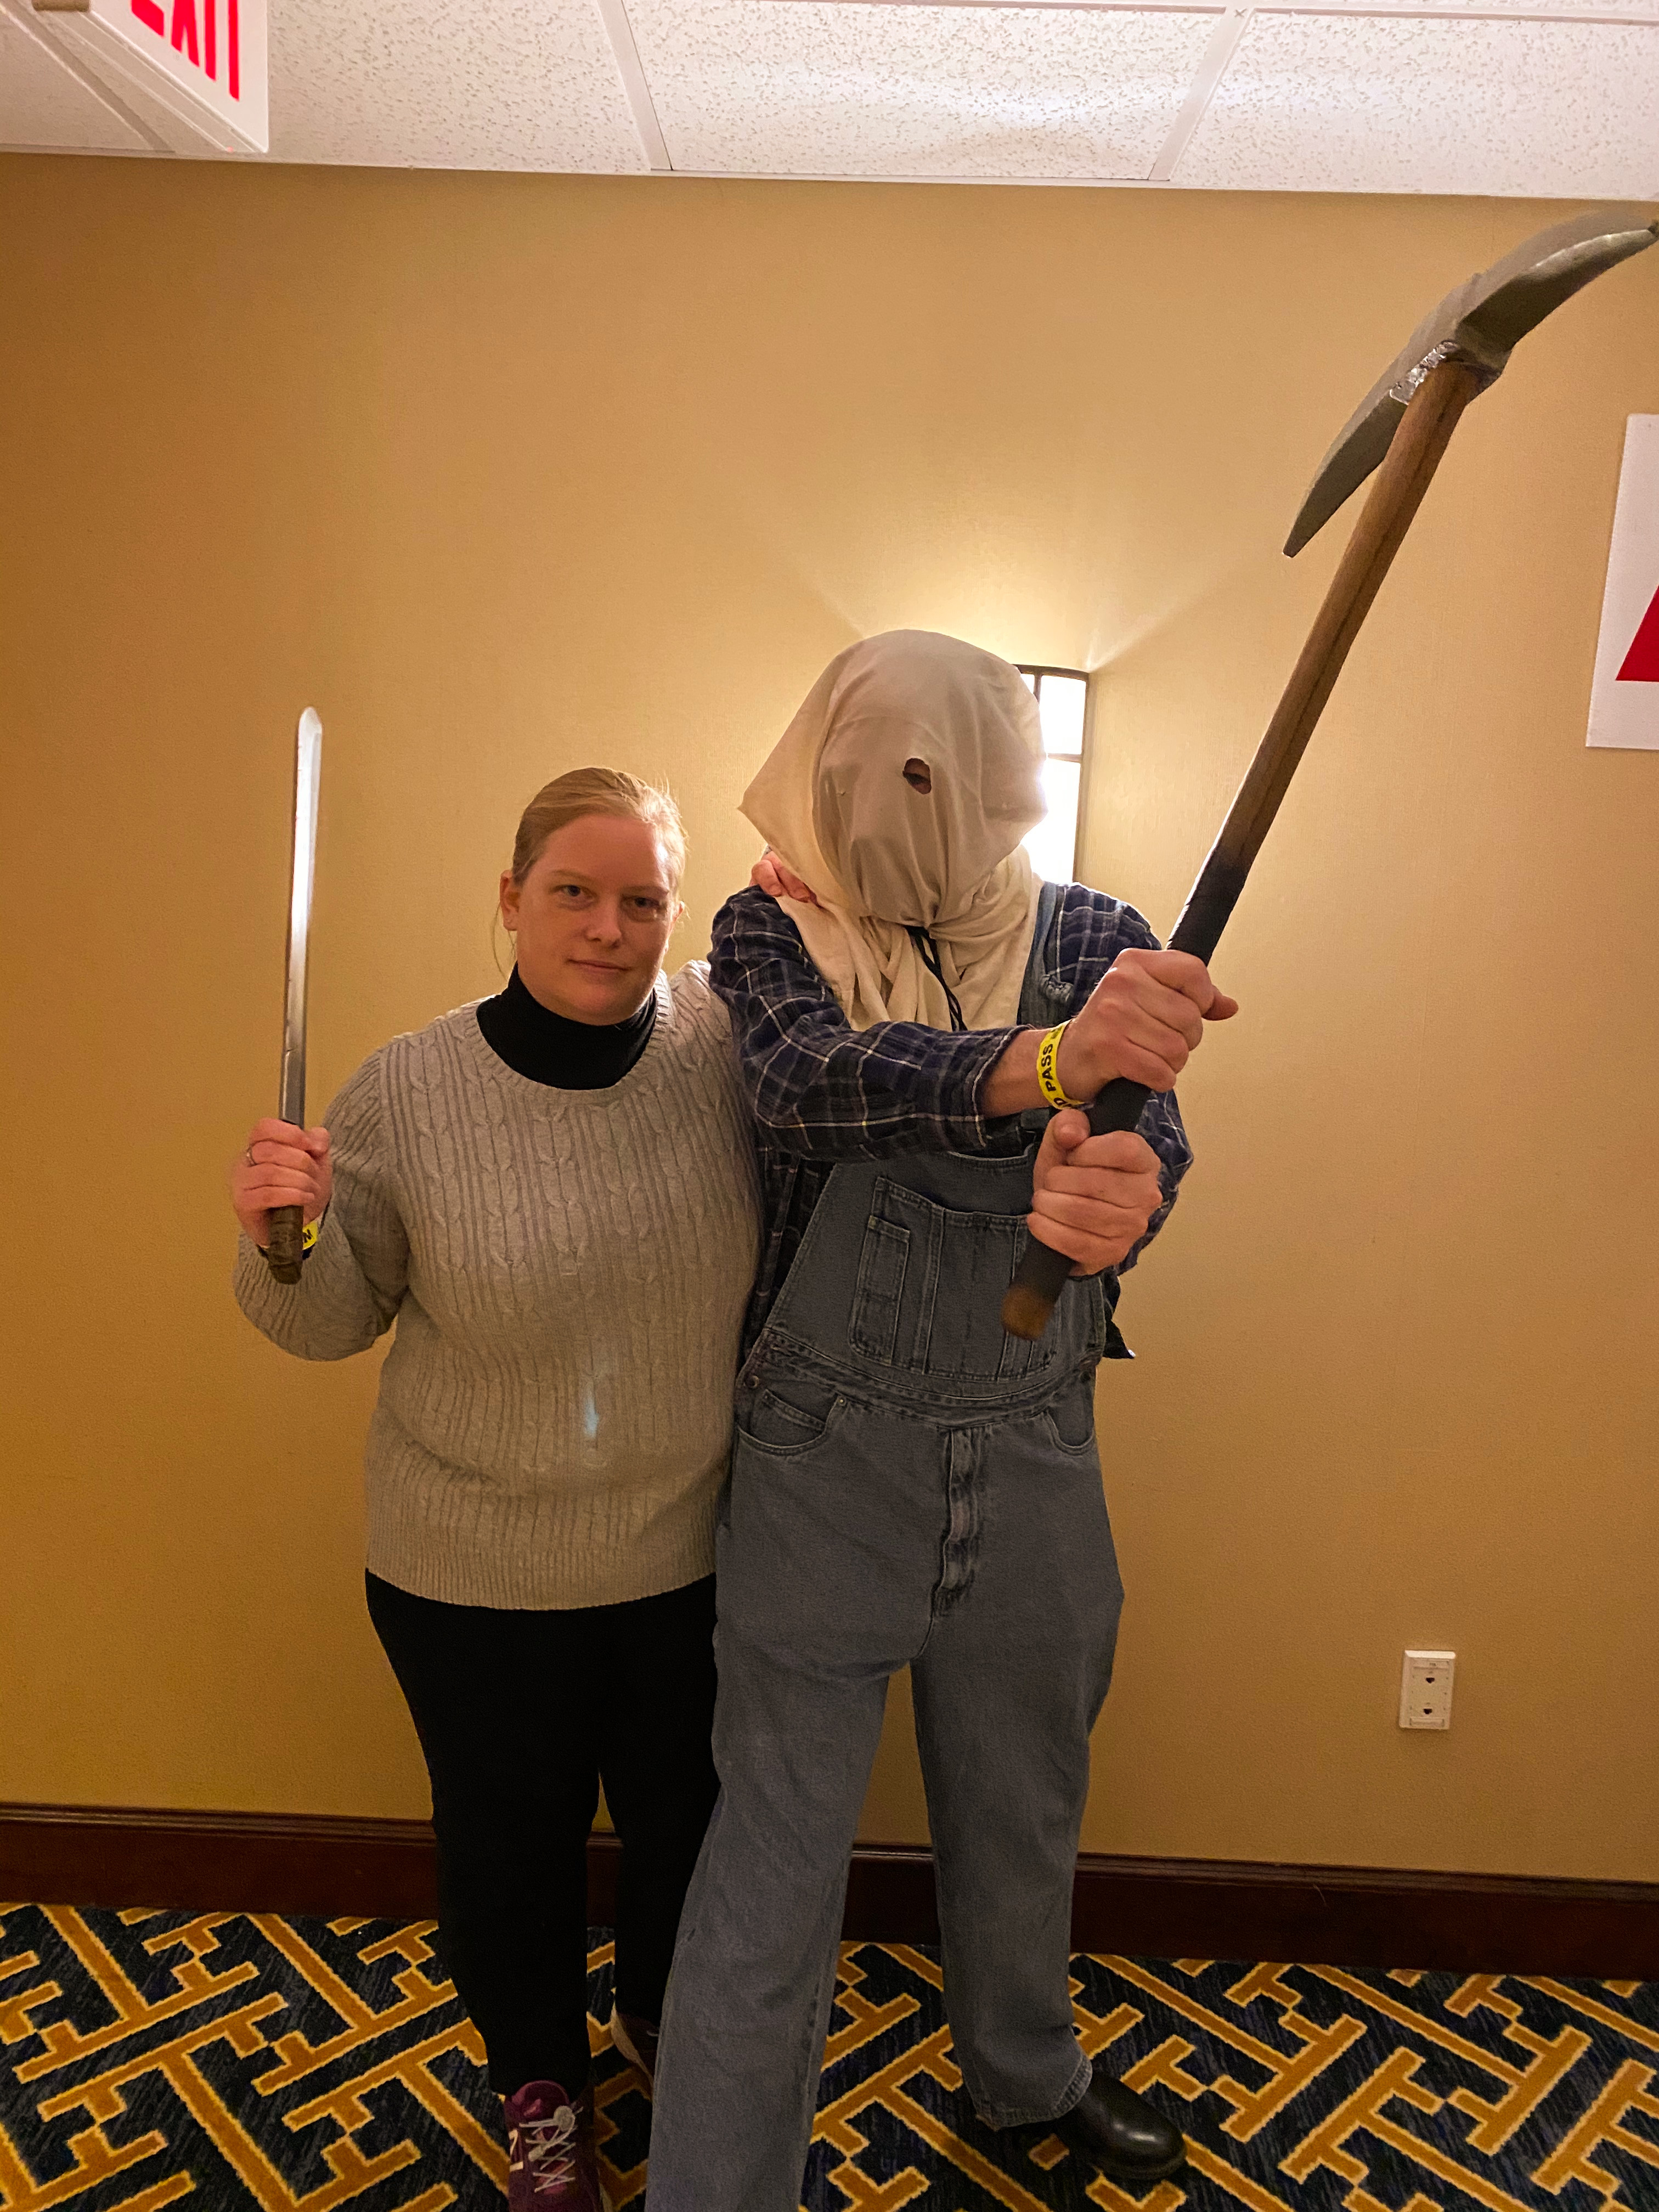 Pamela and Jason Voorhees